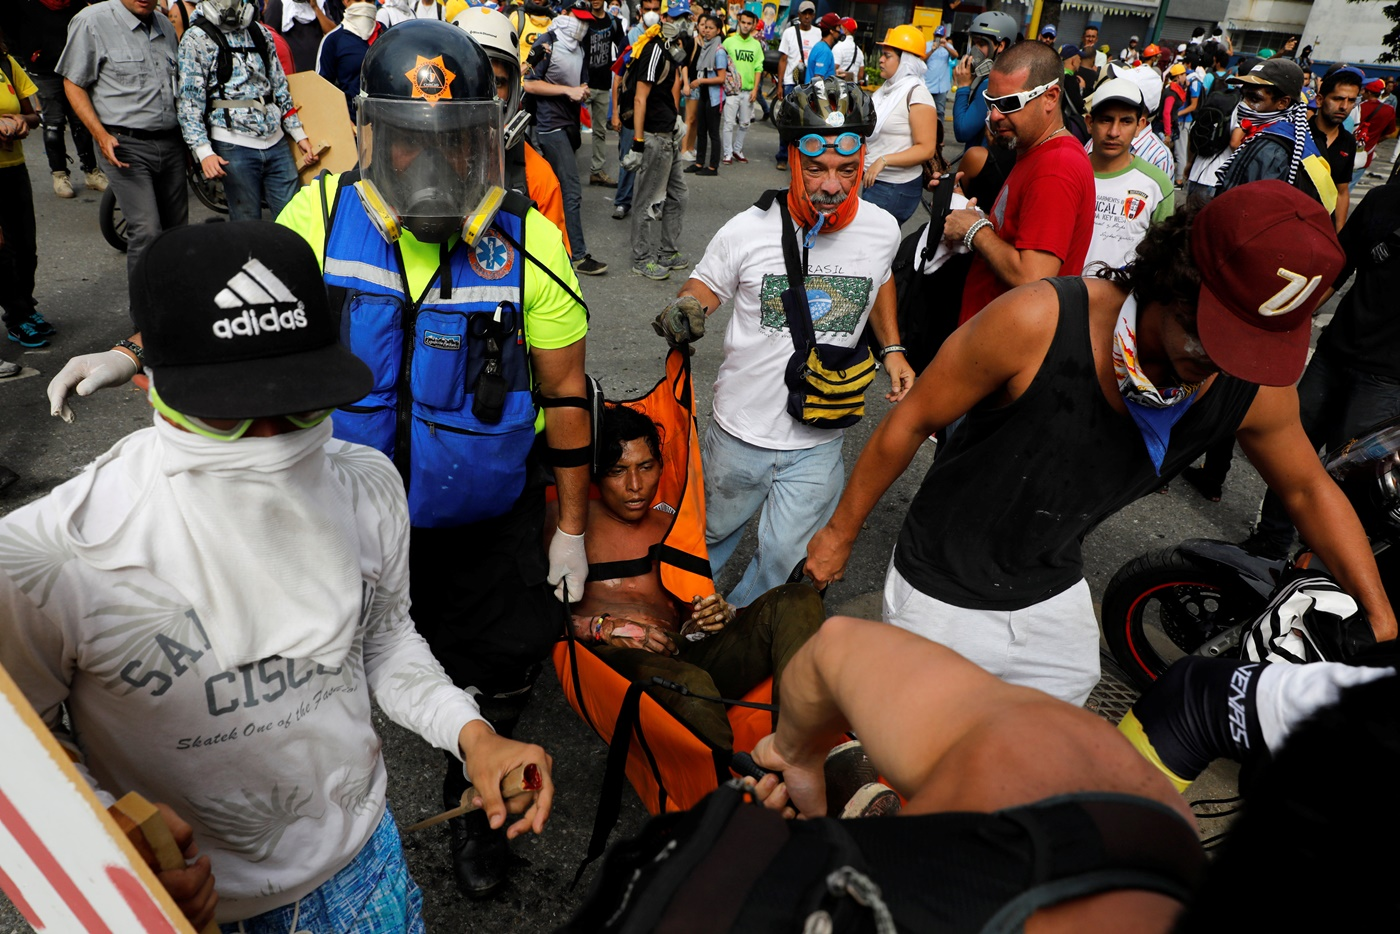 ATTENTION EDITORS - VISUAL COVERAGE OF SCENES OF INJURY OR DEATHAn injured opposition supporter is helped by others during a rally against President Nicolas Maduro in Caracas, Venezuela, May 3, 2017. REUTERS/Carlos Garcia Rawlins TEMPLATE OUT